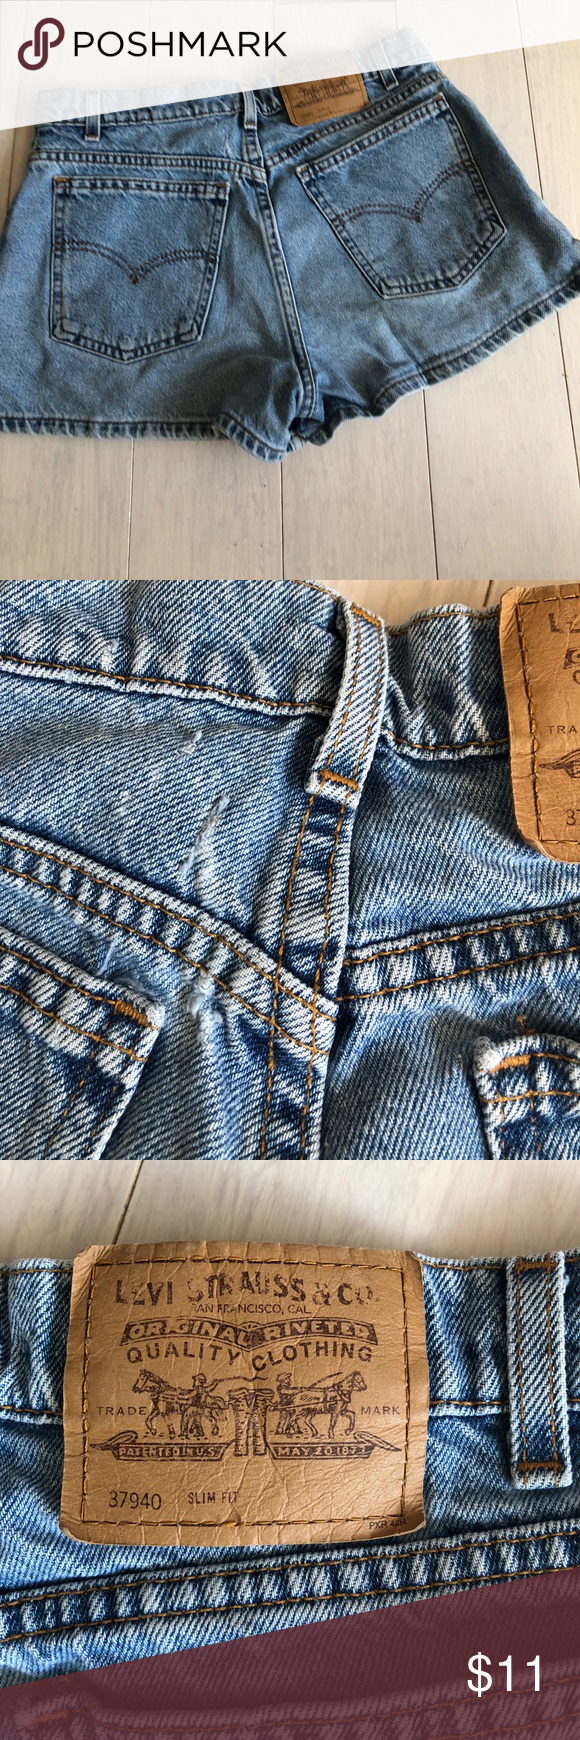 Levi's Blue denim shorts size 11 27 juniors 💕Vtg Super cute shorts some distressed on back see picture and also on the hems these are made for curvy girls💕Shows our butts perfectly!!!! Vintage from the 90s levis Shorts Jean Shorts